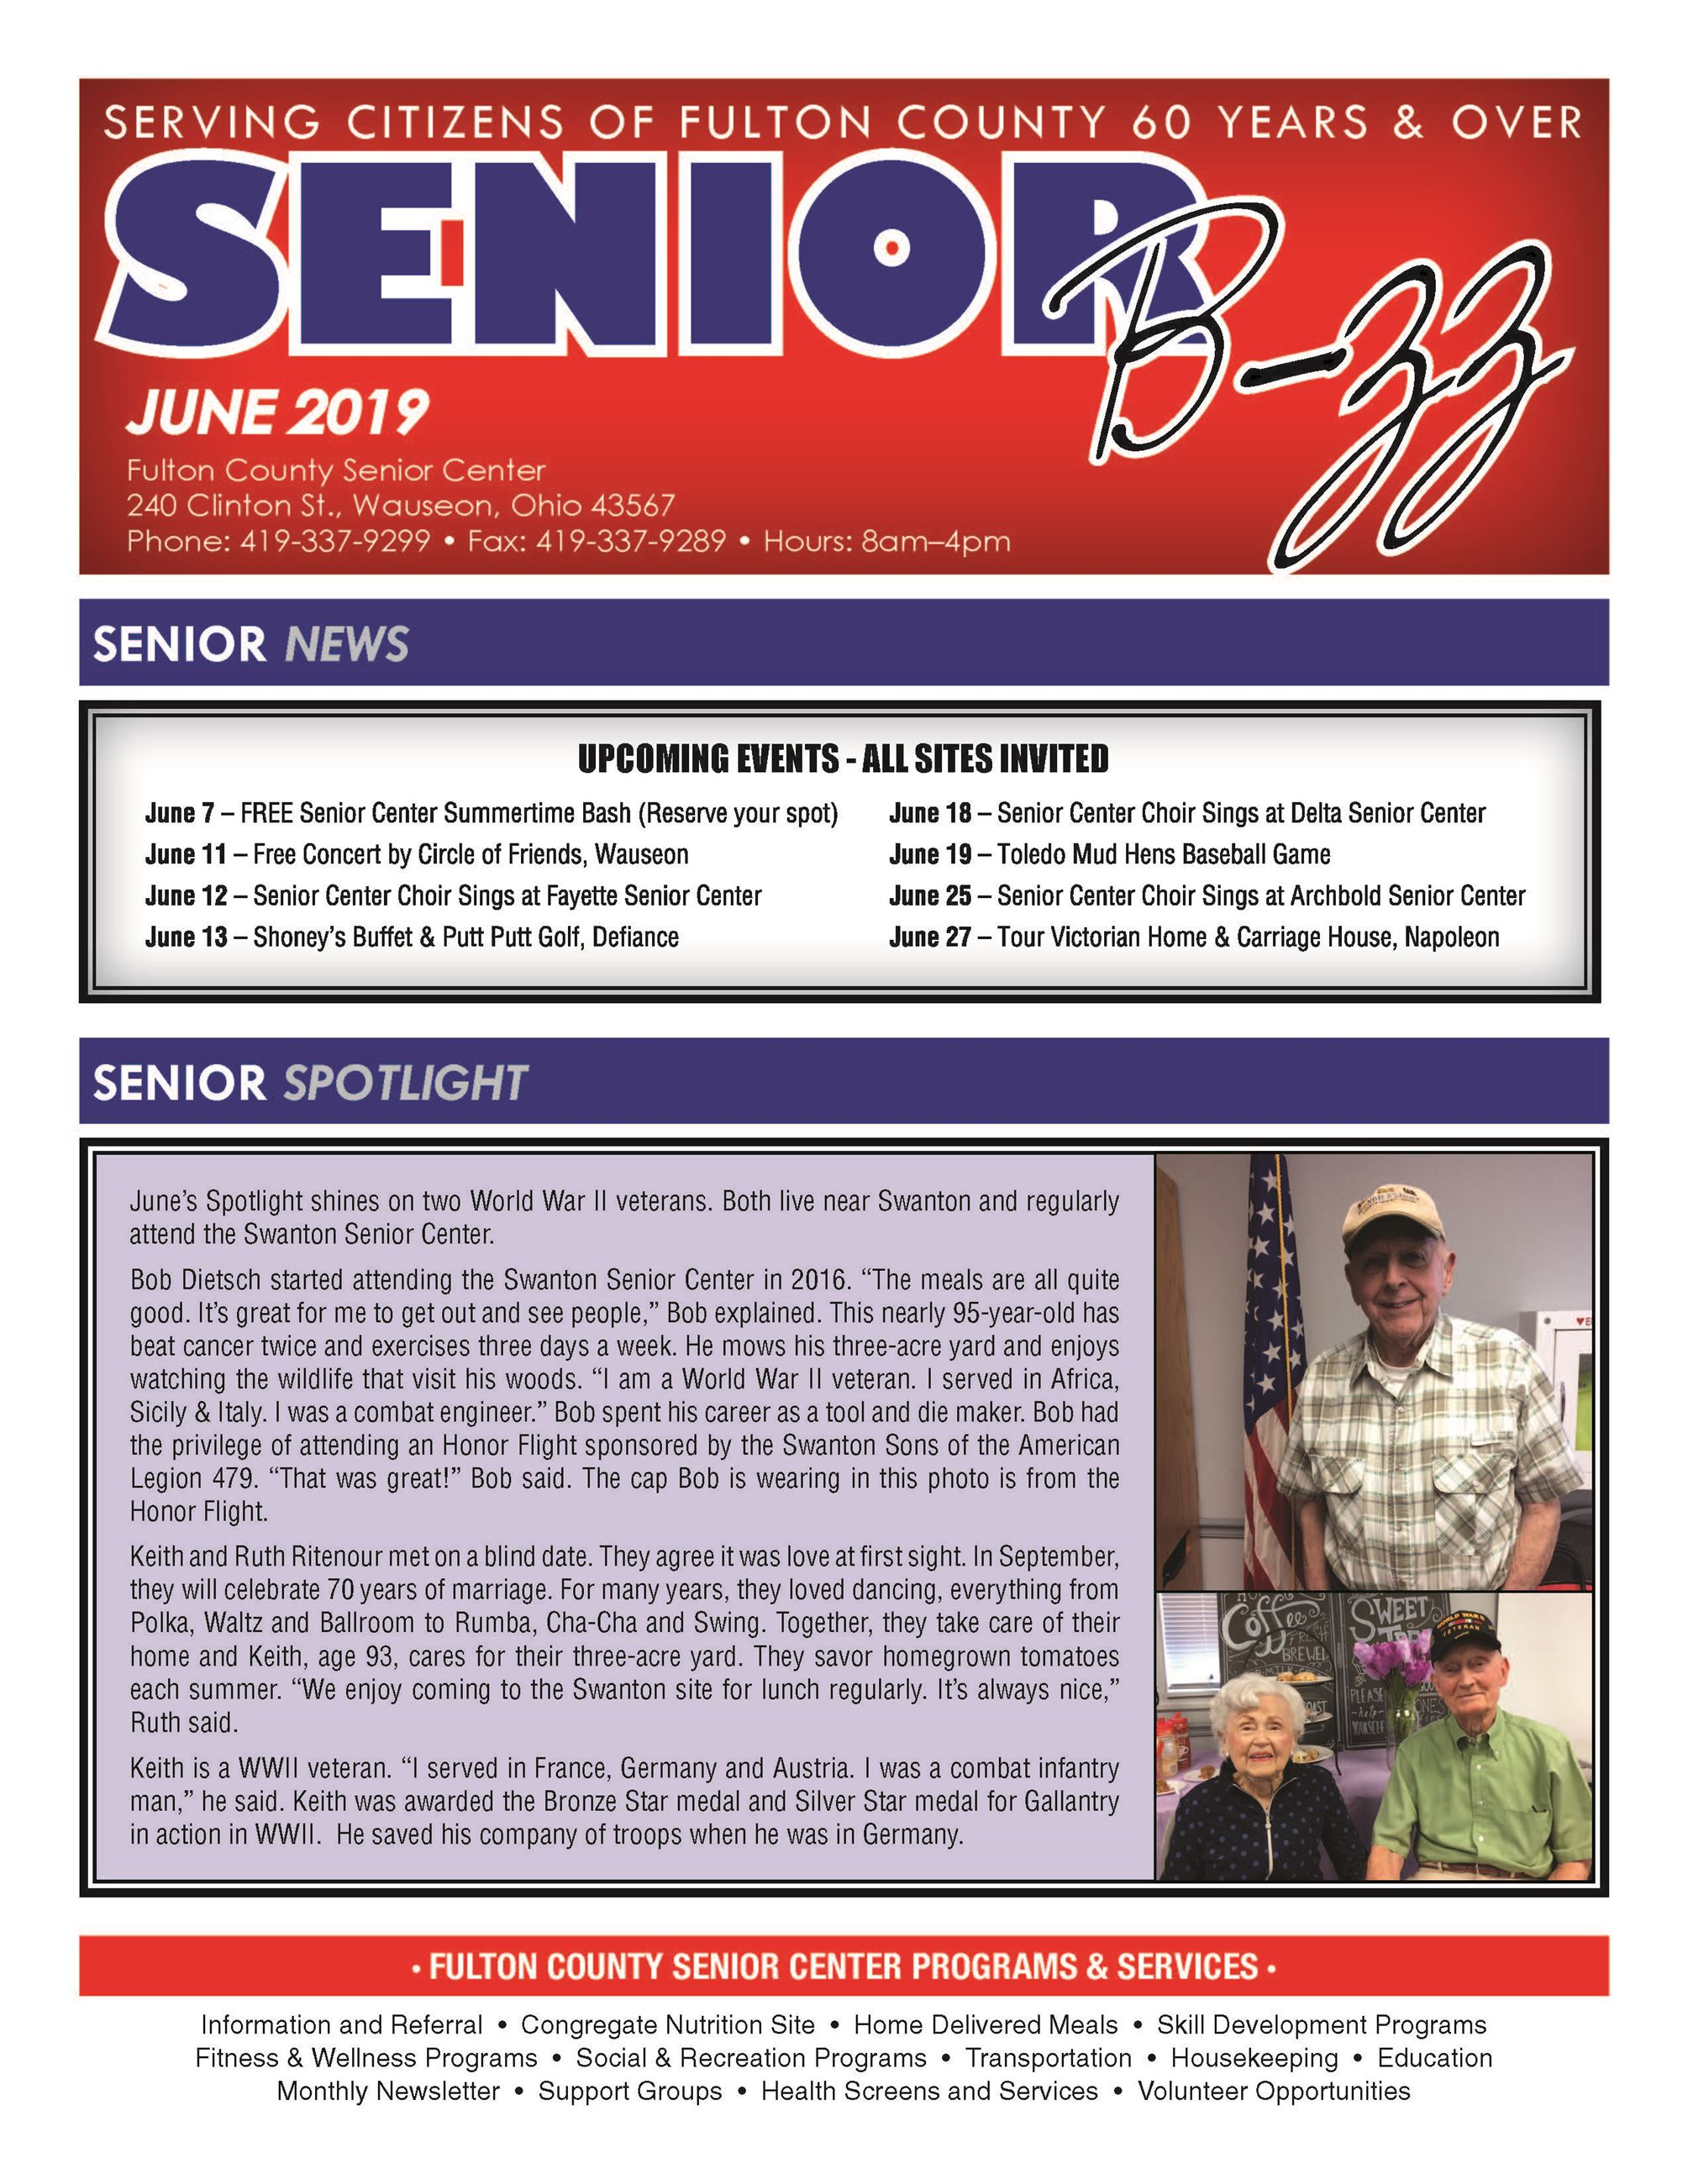 Front Page of June 2019 Senior Buzz